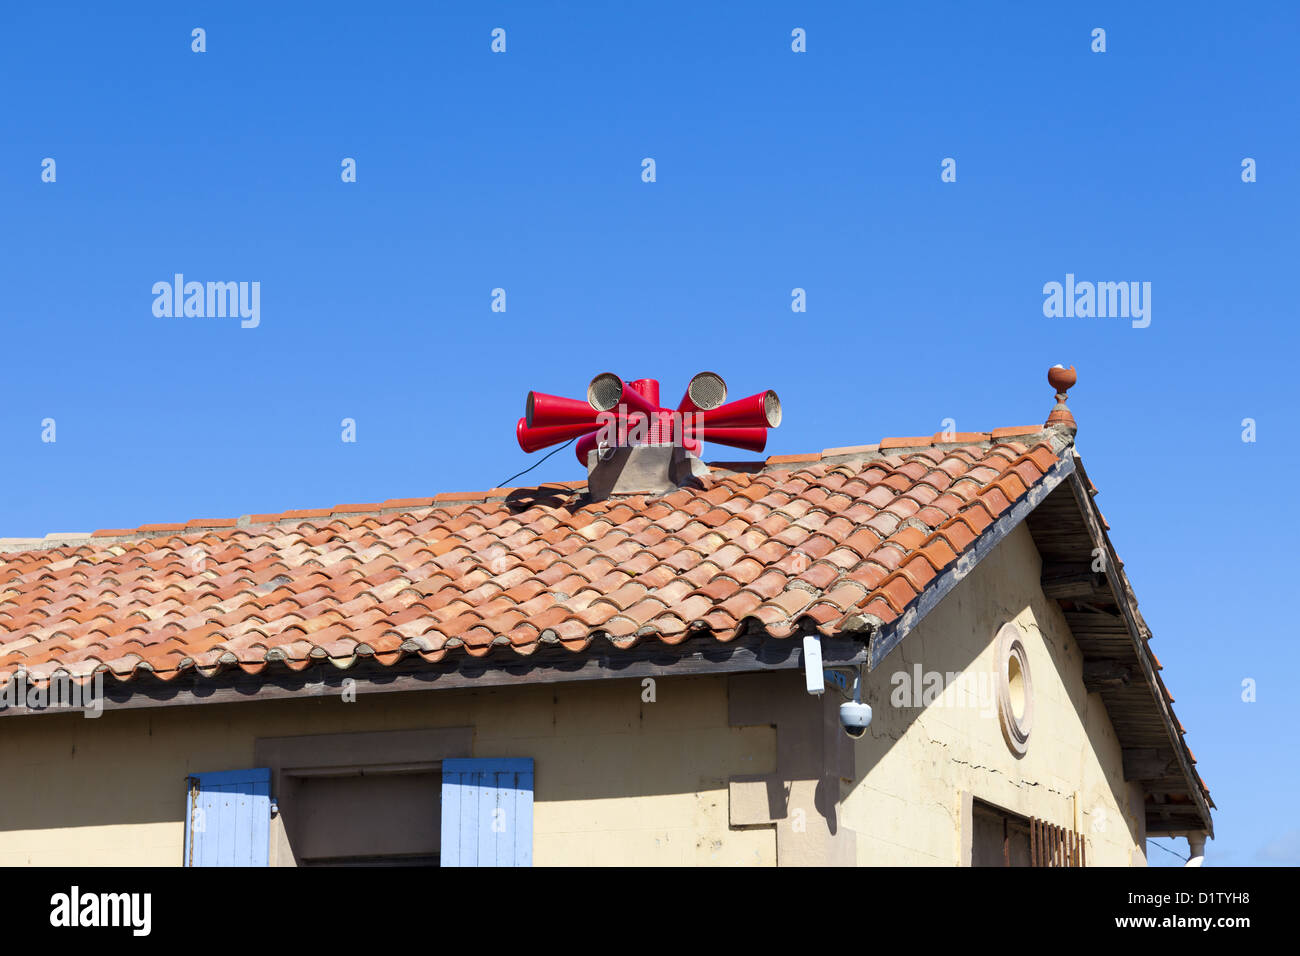 Big red fire siren on house roof against a blue sky - Stock Image